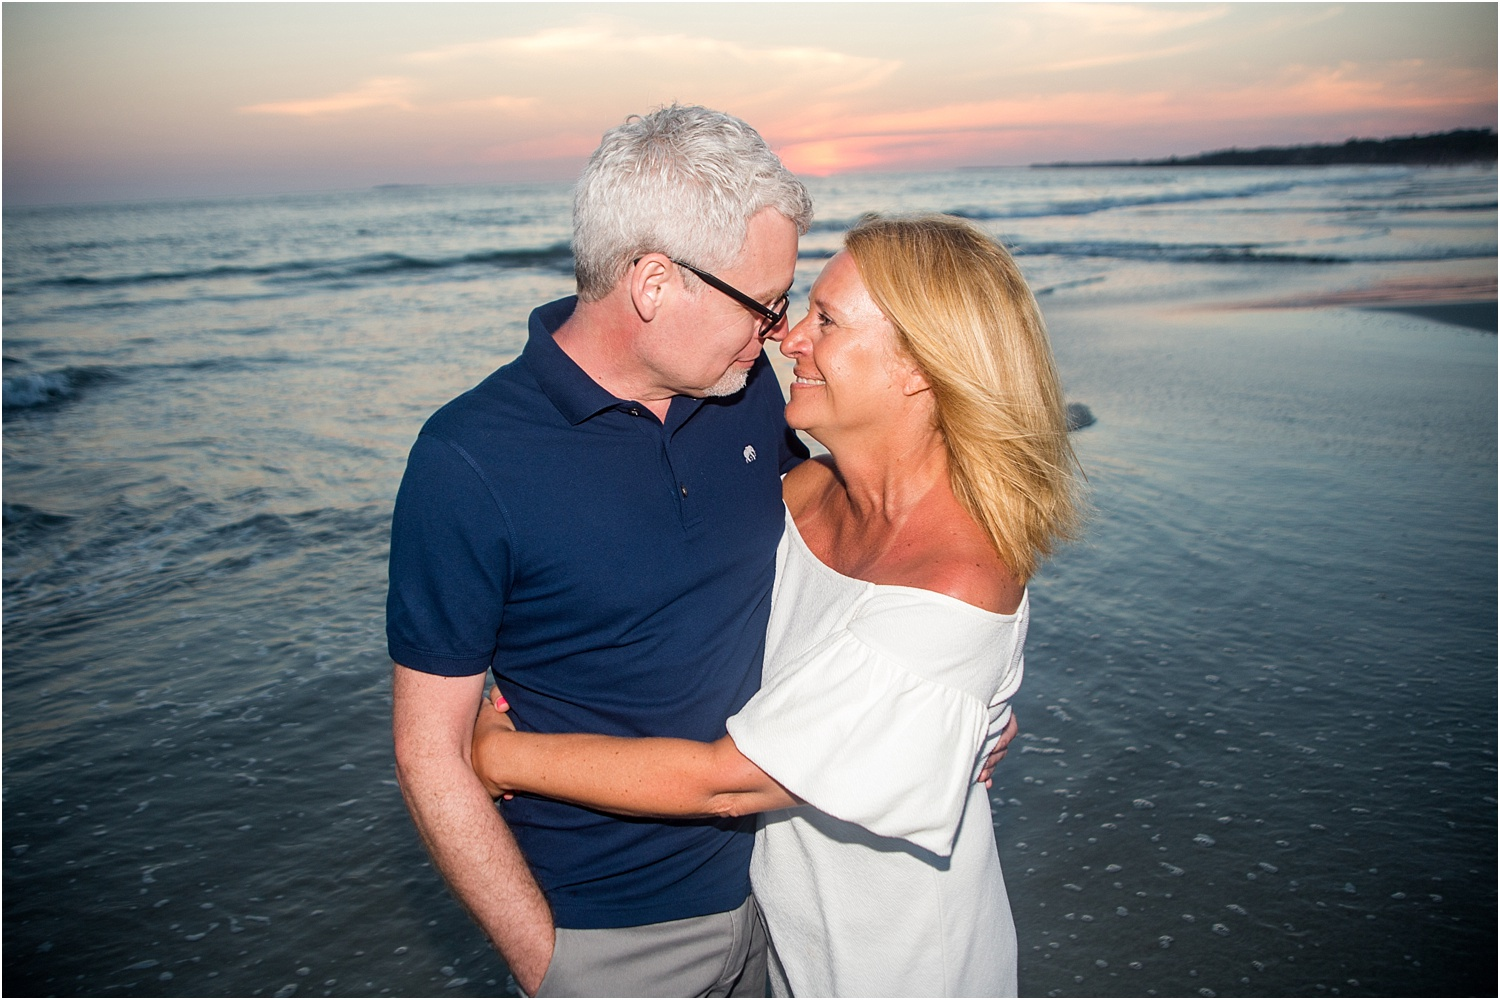 couple at sunset - Using Flash for Beach Portraits